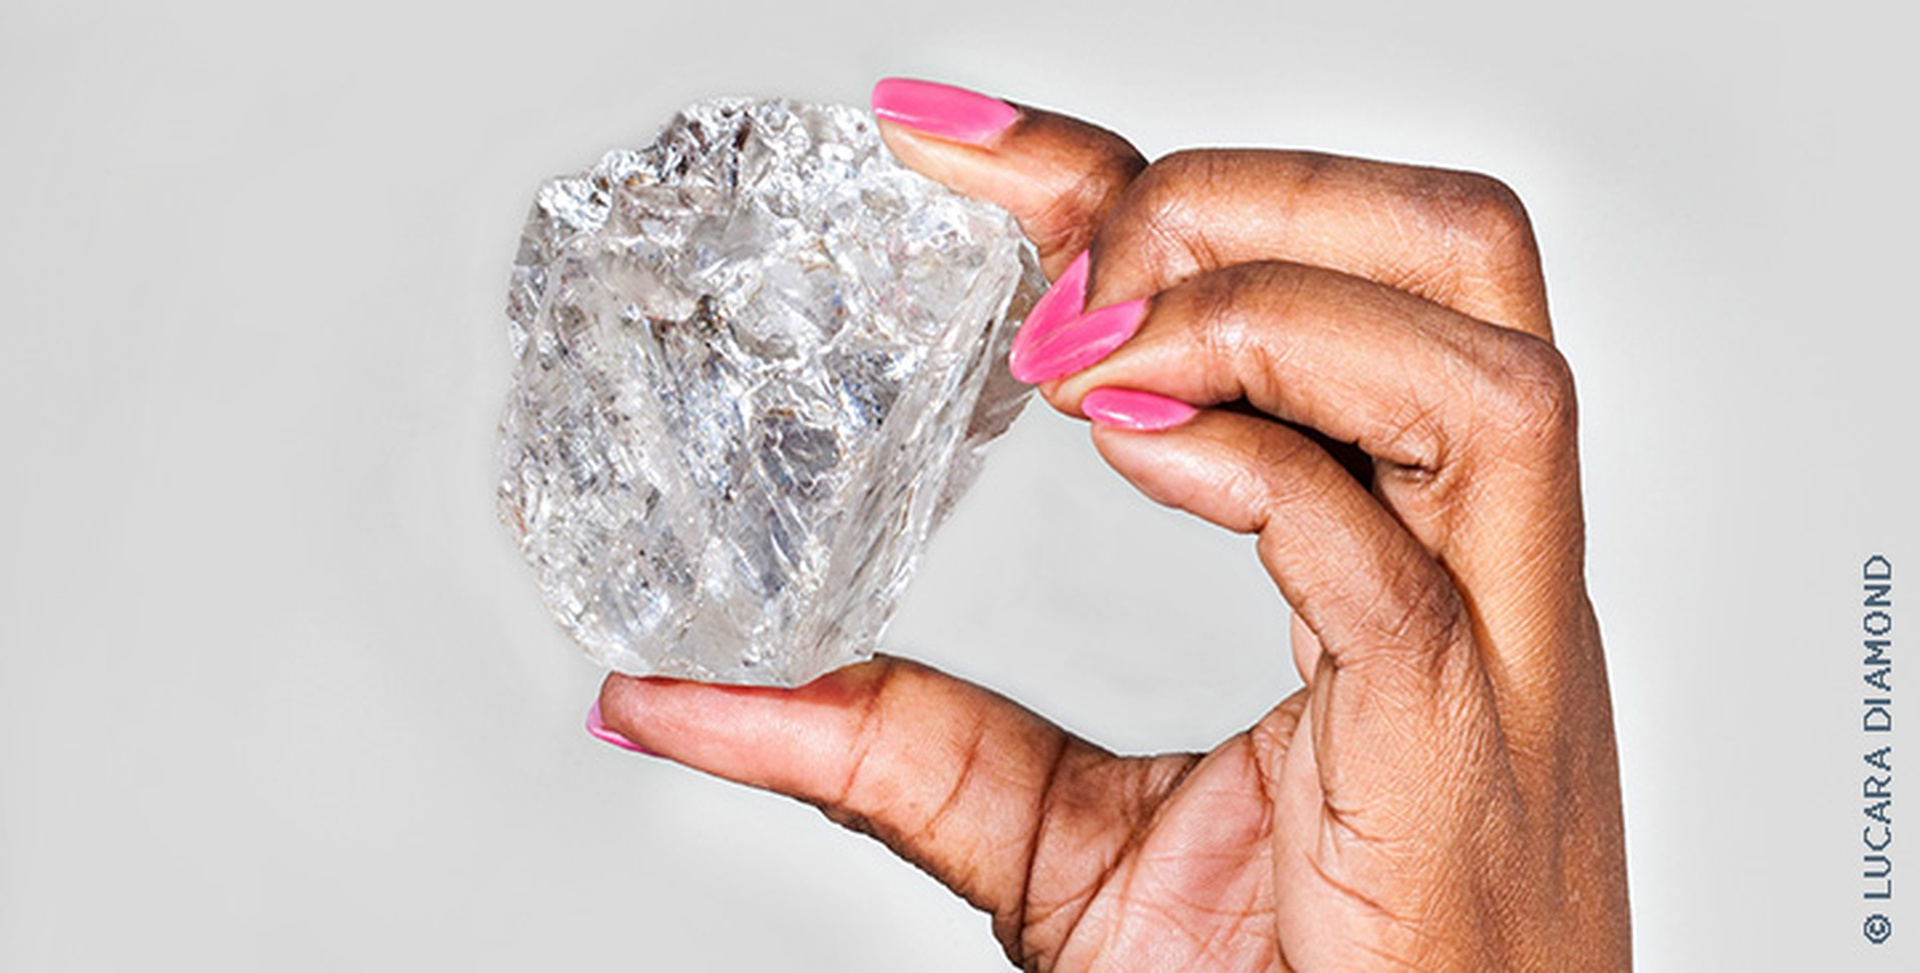 second-largest-diamond-ever-recovered-114523.jpg